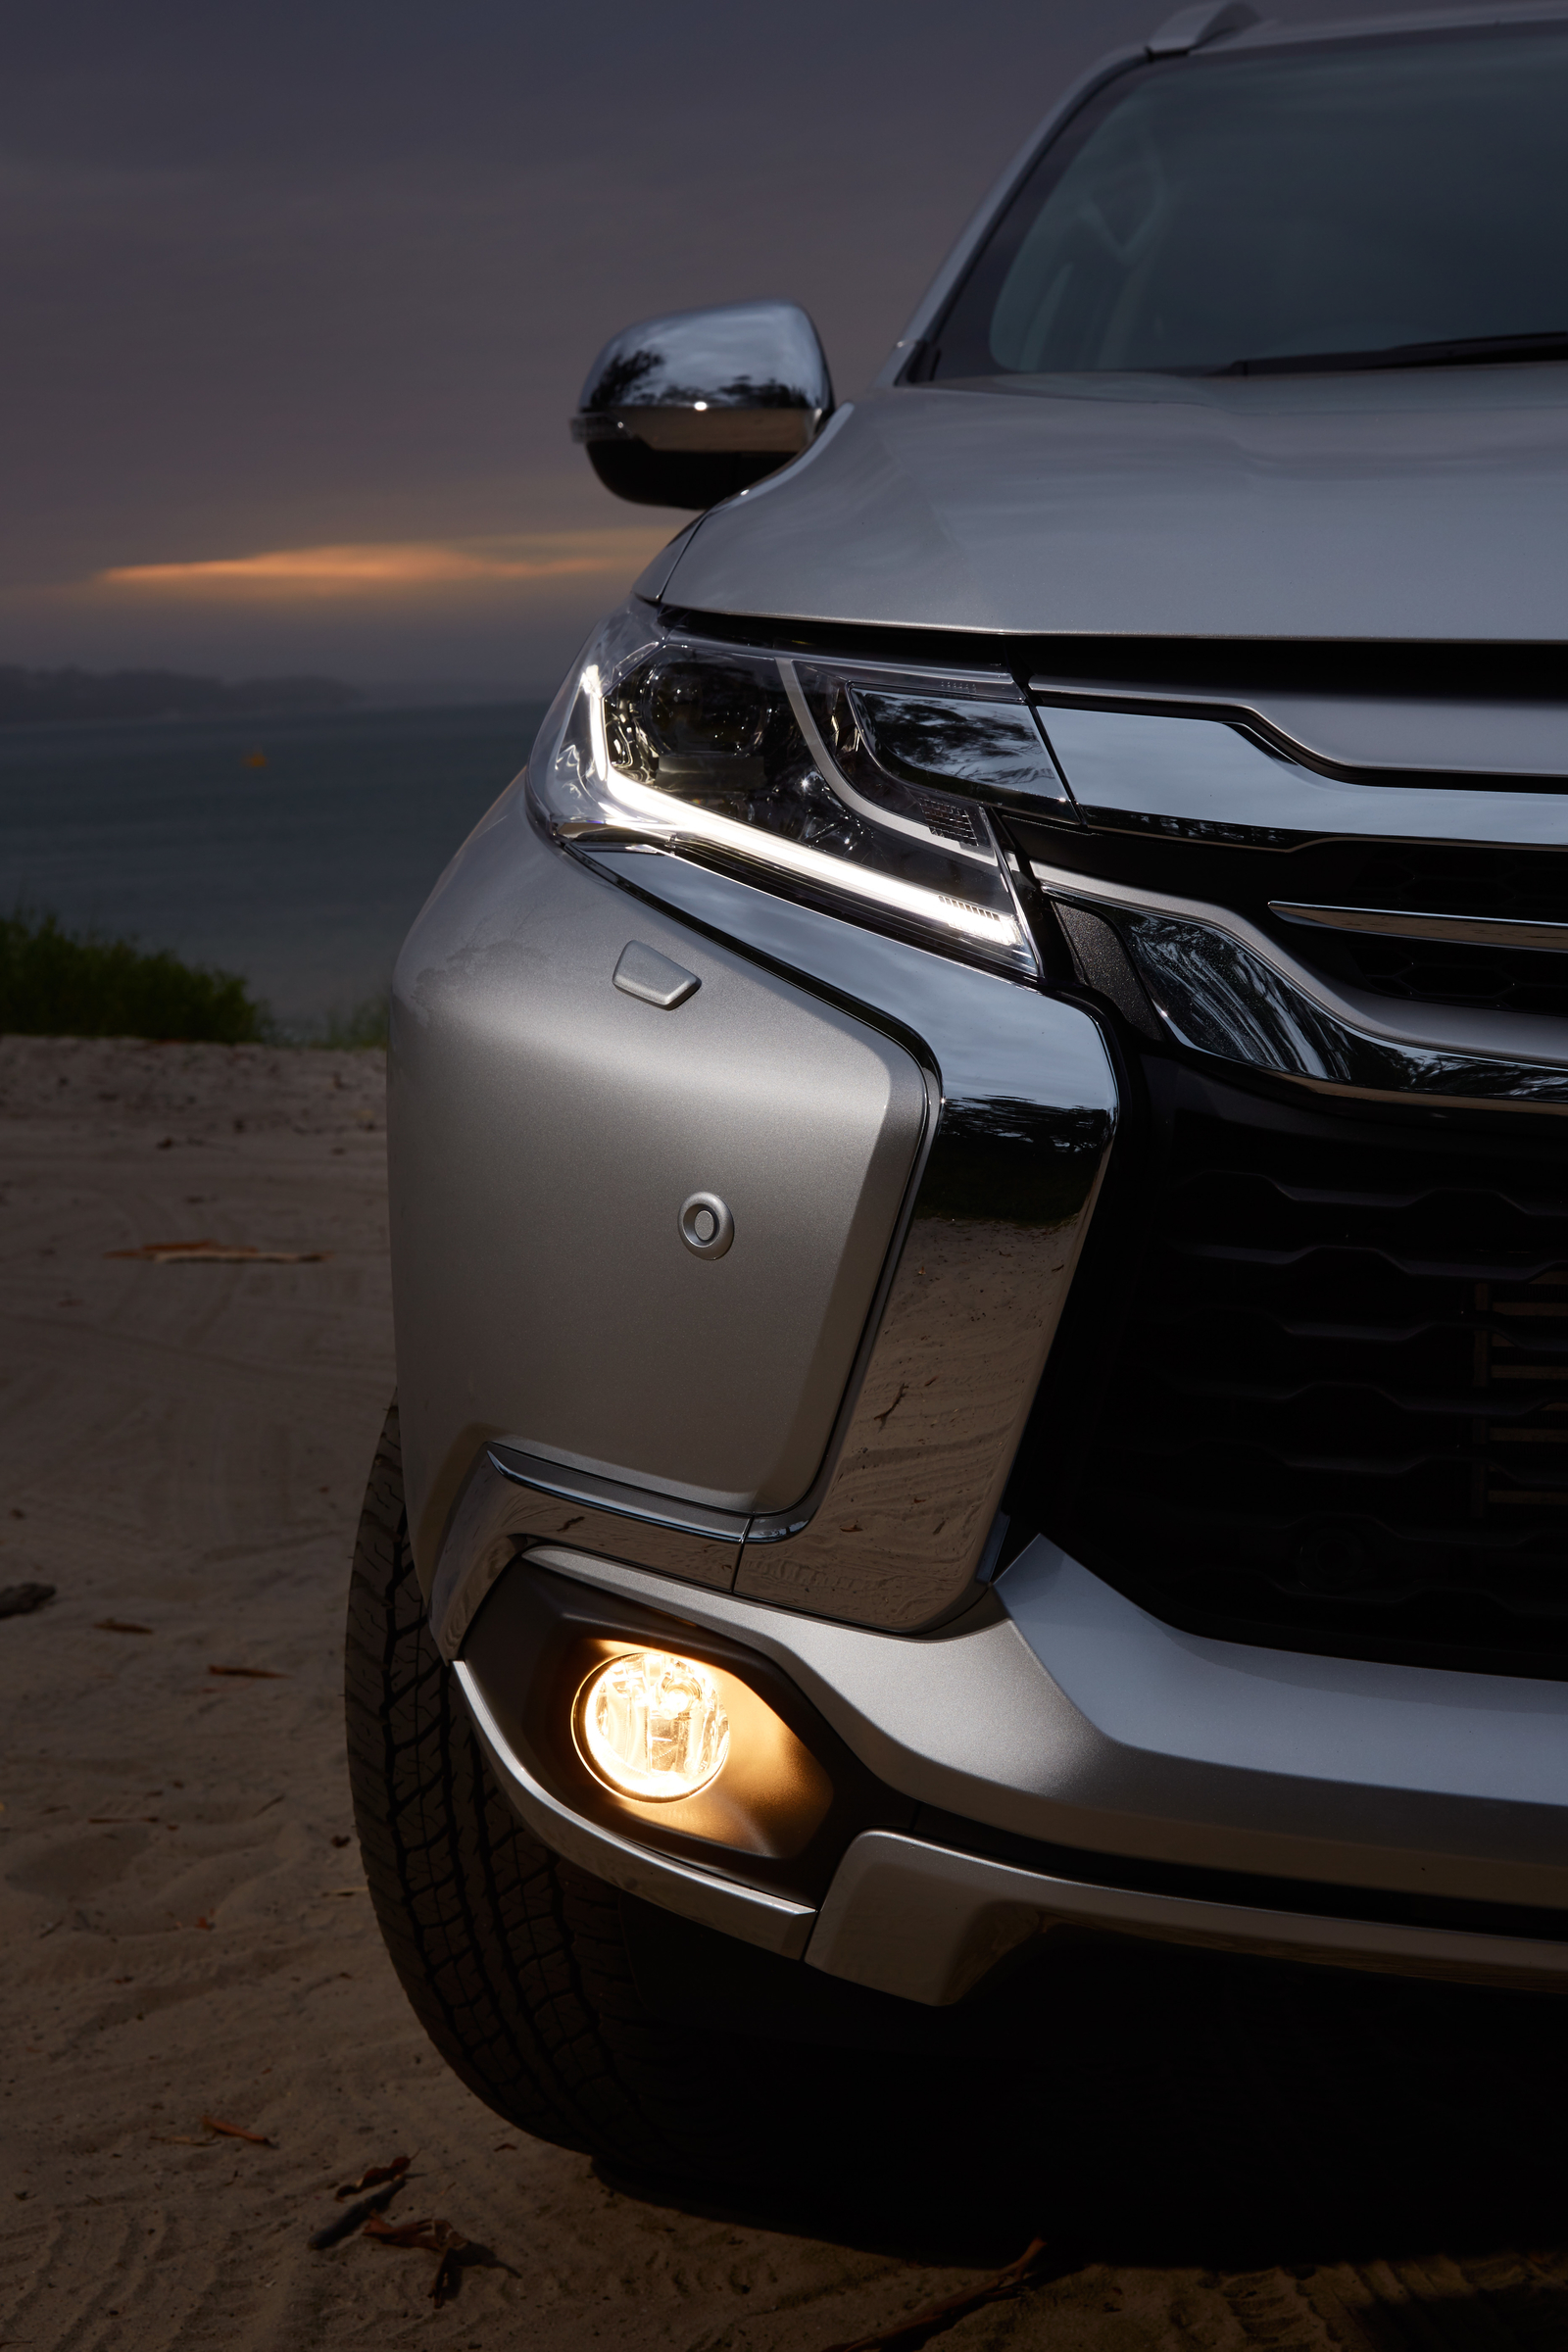 2016 Mitsubishi Pajero Sport Headlamp (Photo 9 of 23)